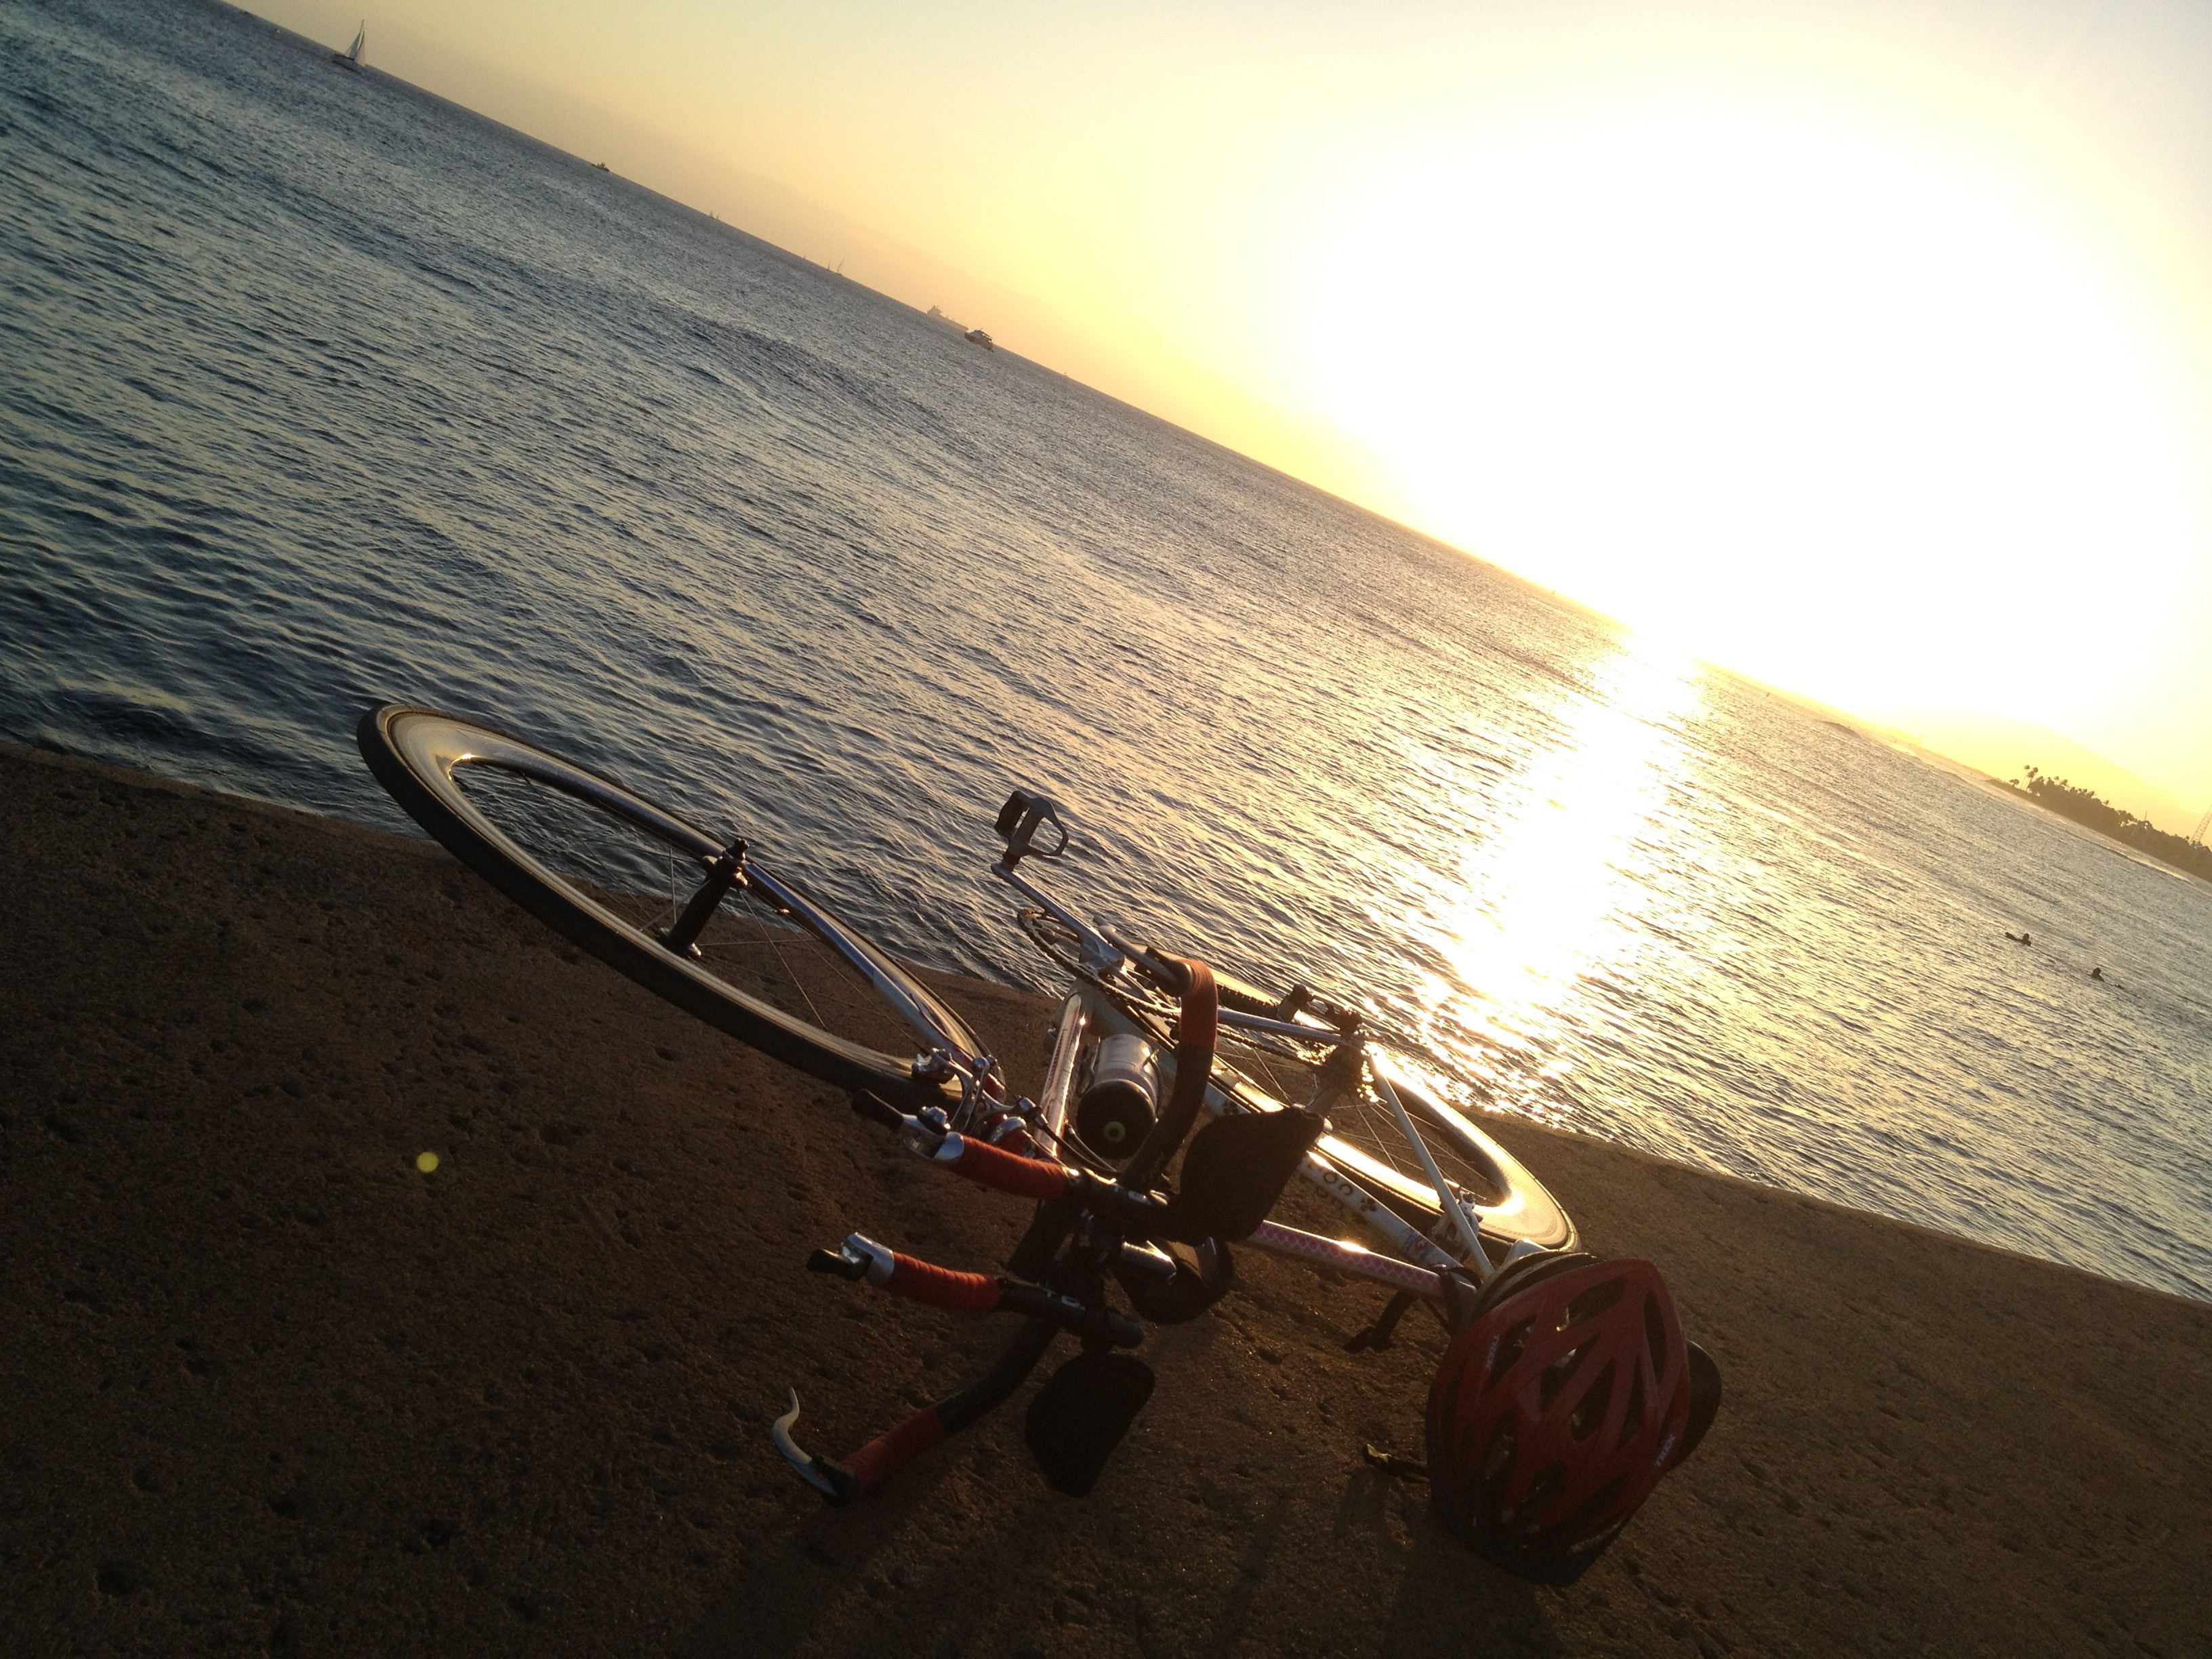 Honolulu sunset and my bike.